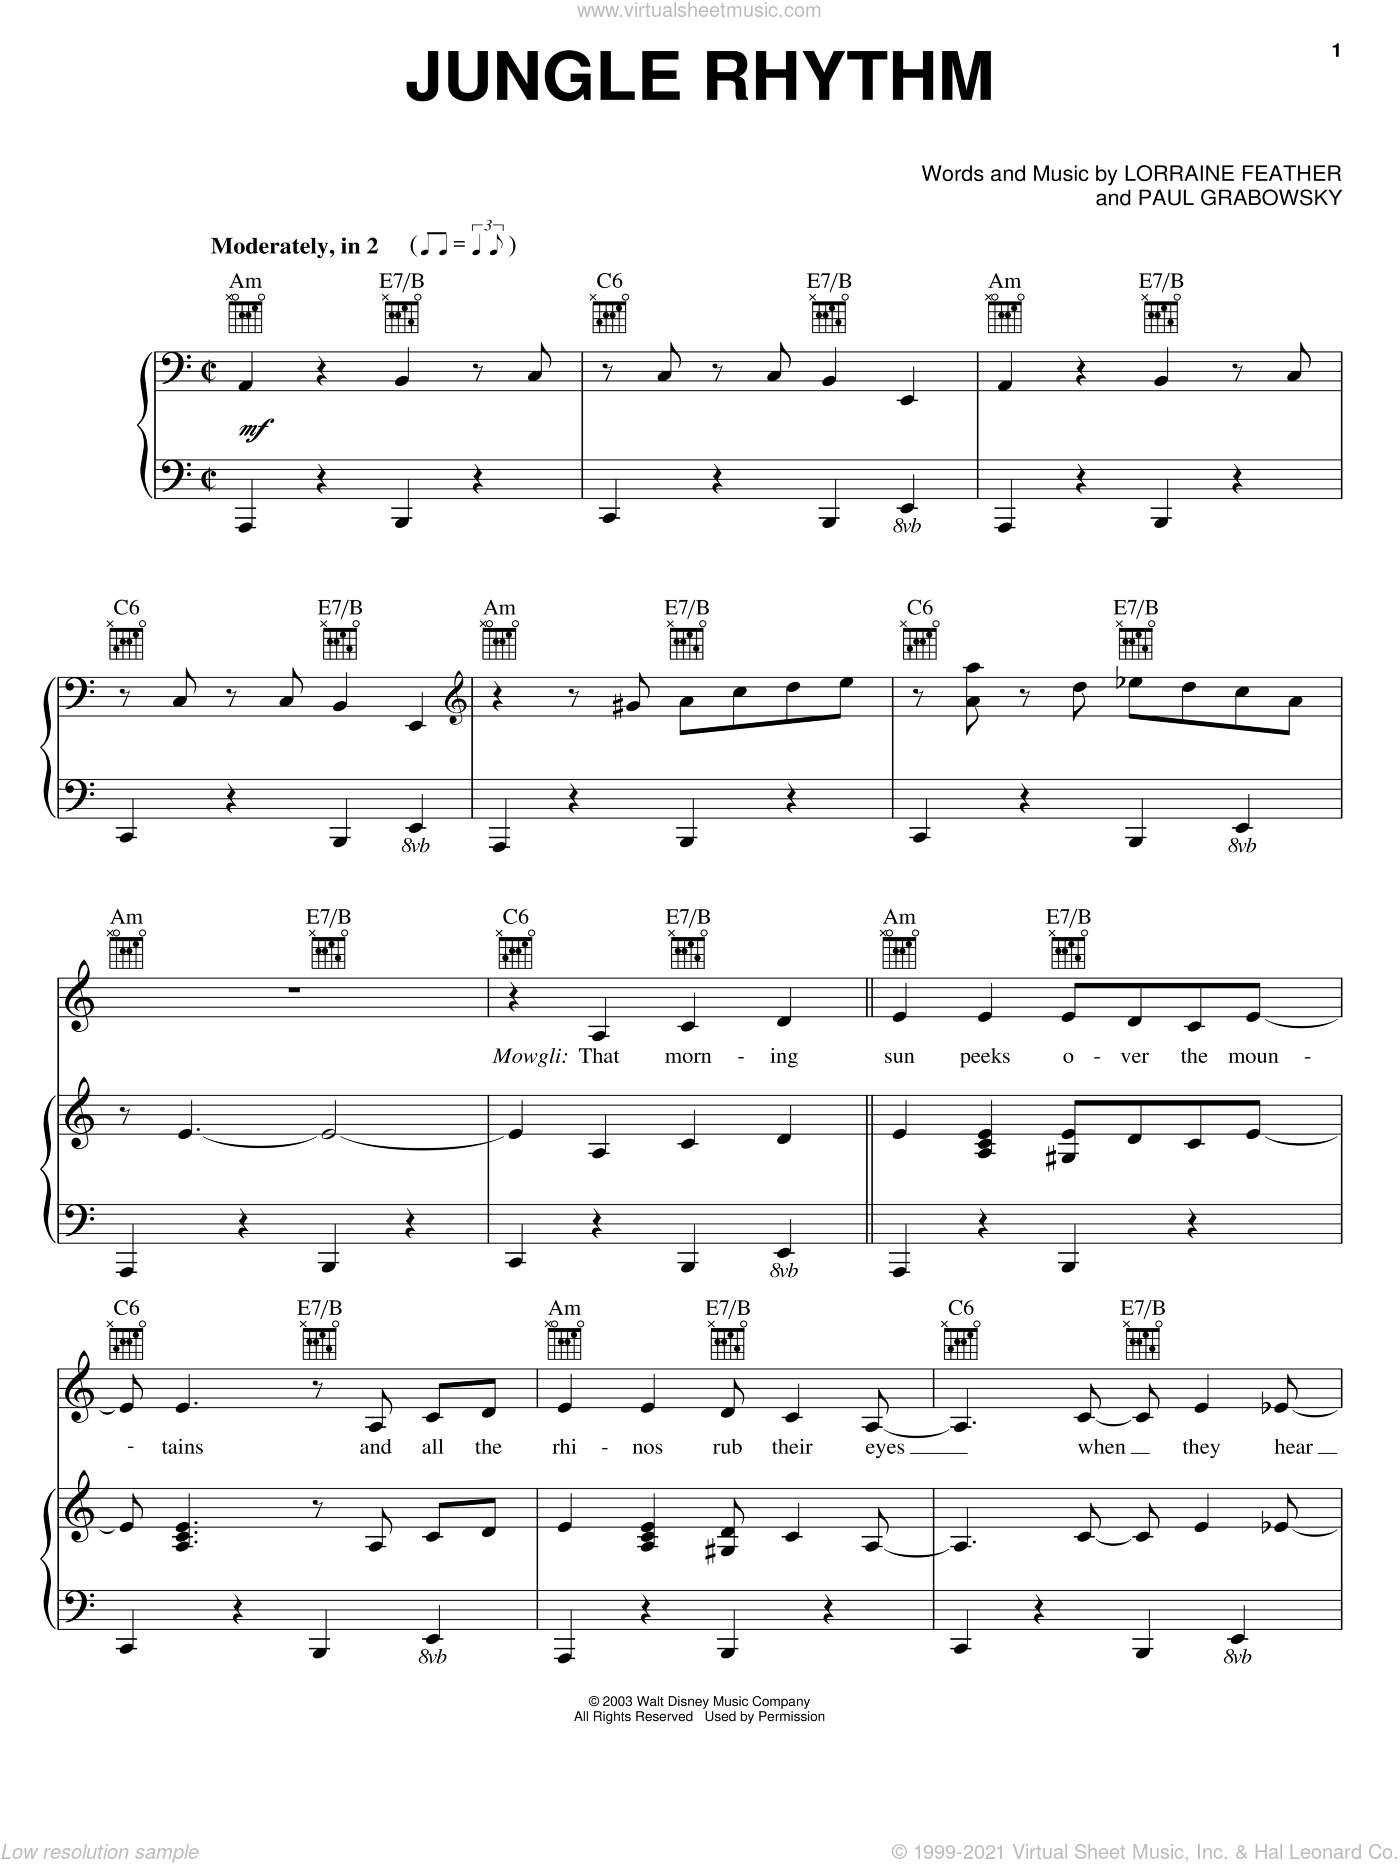 Jungle Rhythm sheet music for voice, piano or guitar by Paul Grabowsky